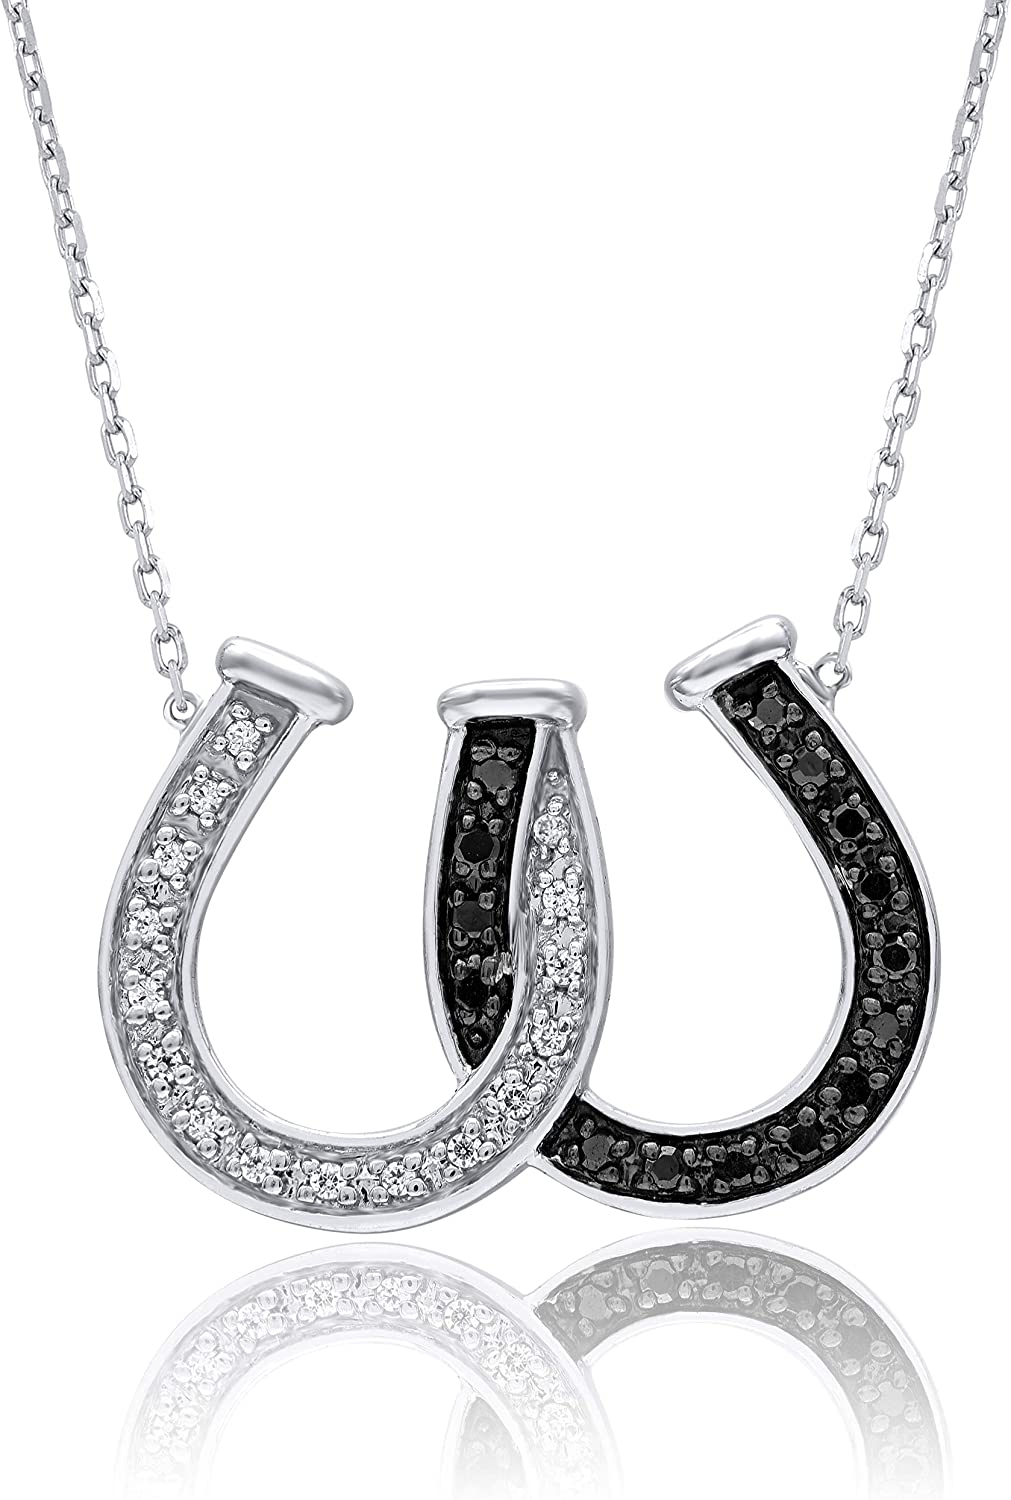 TVS-JEWELS Round Cut Diamond Pendant with 18 Chain for ❤Best